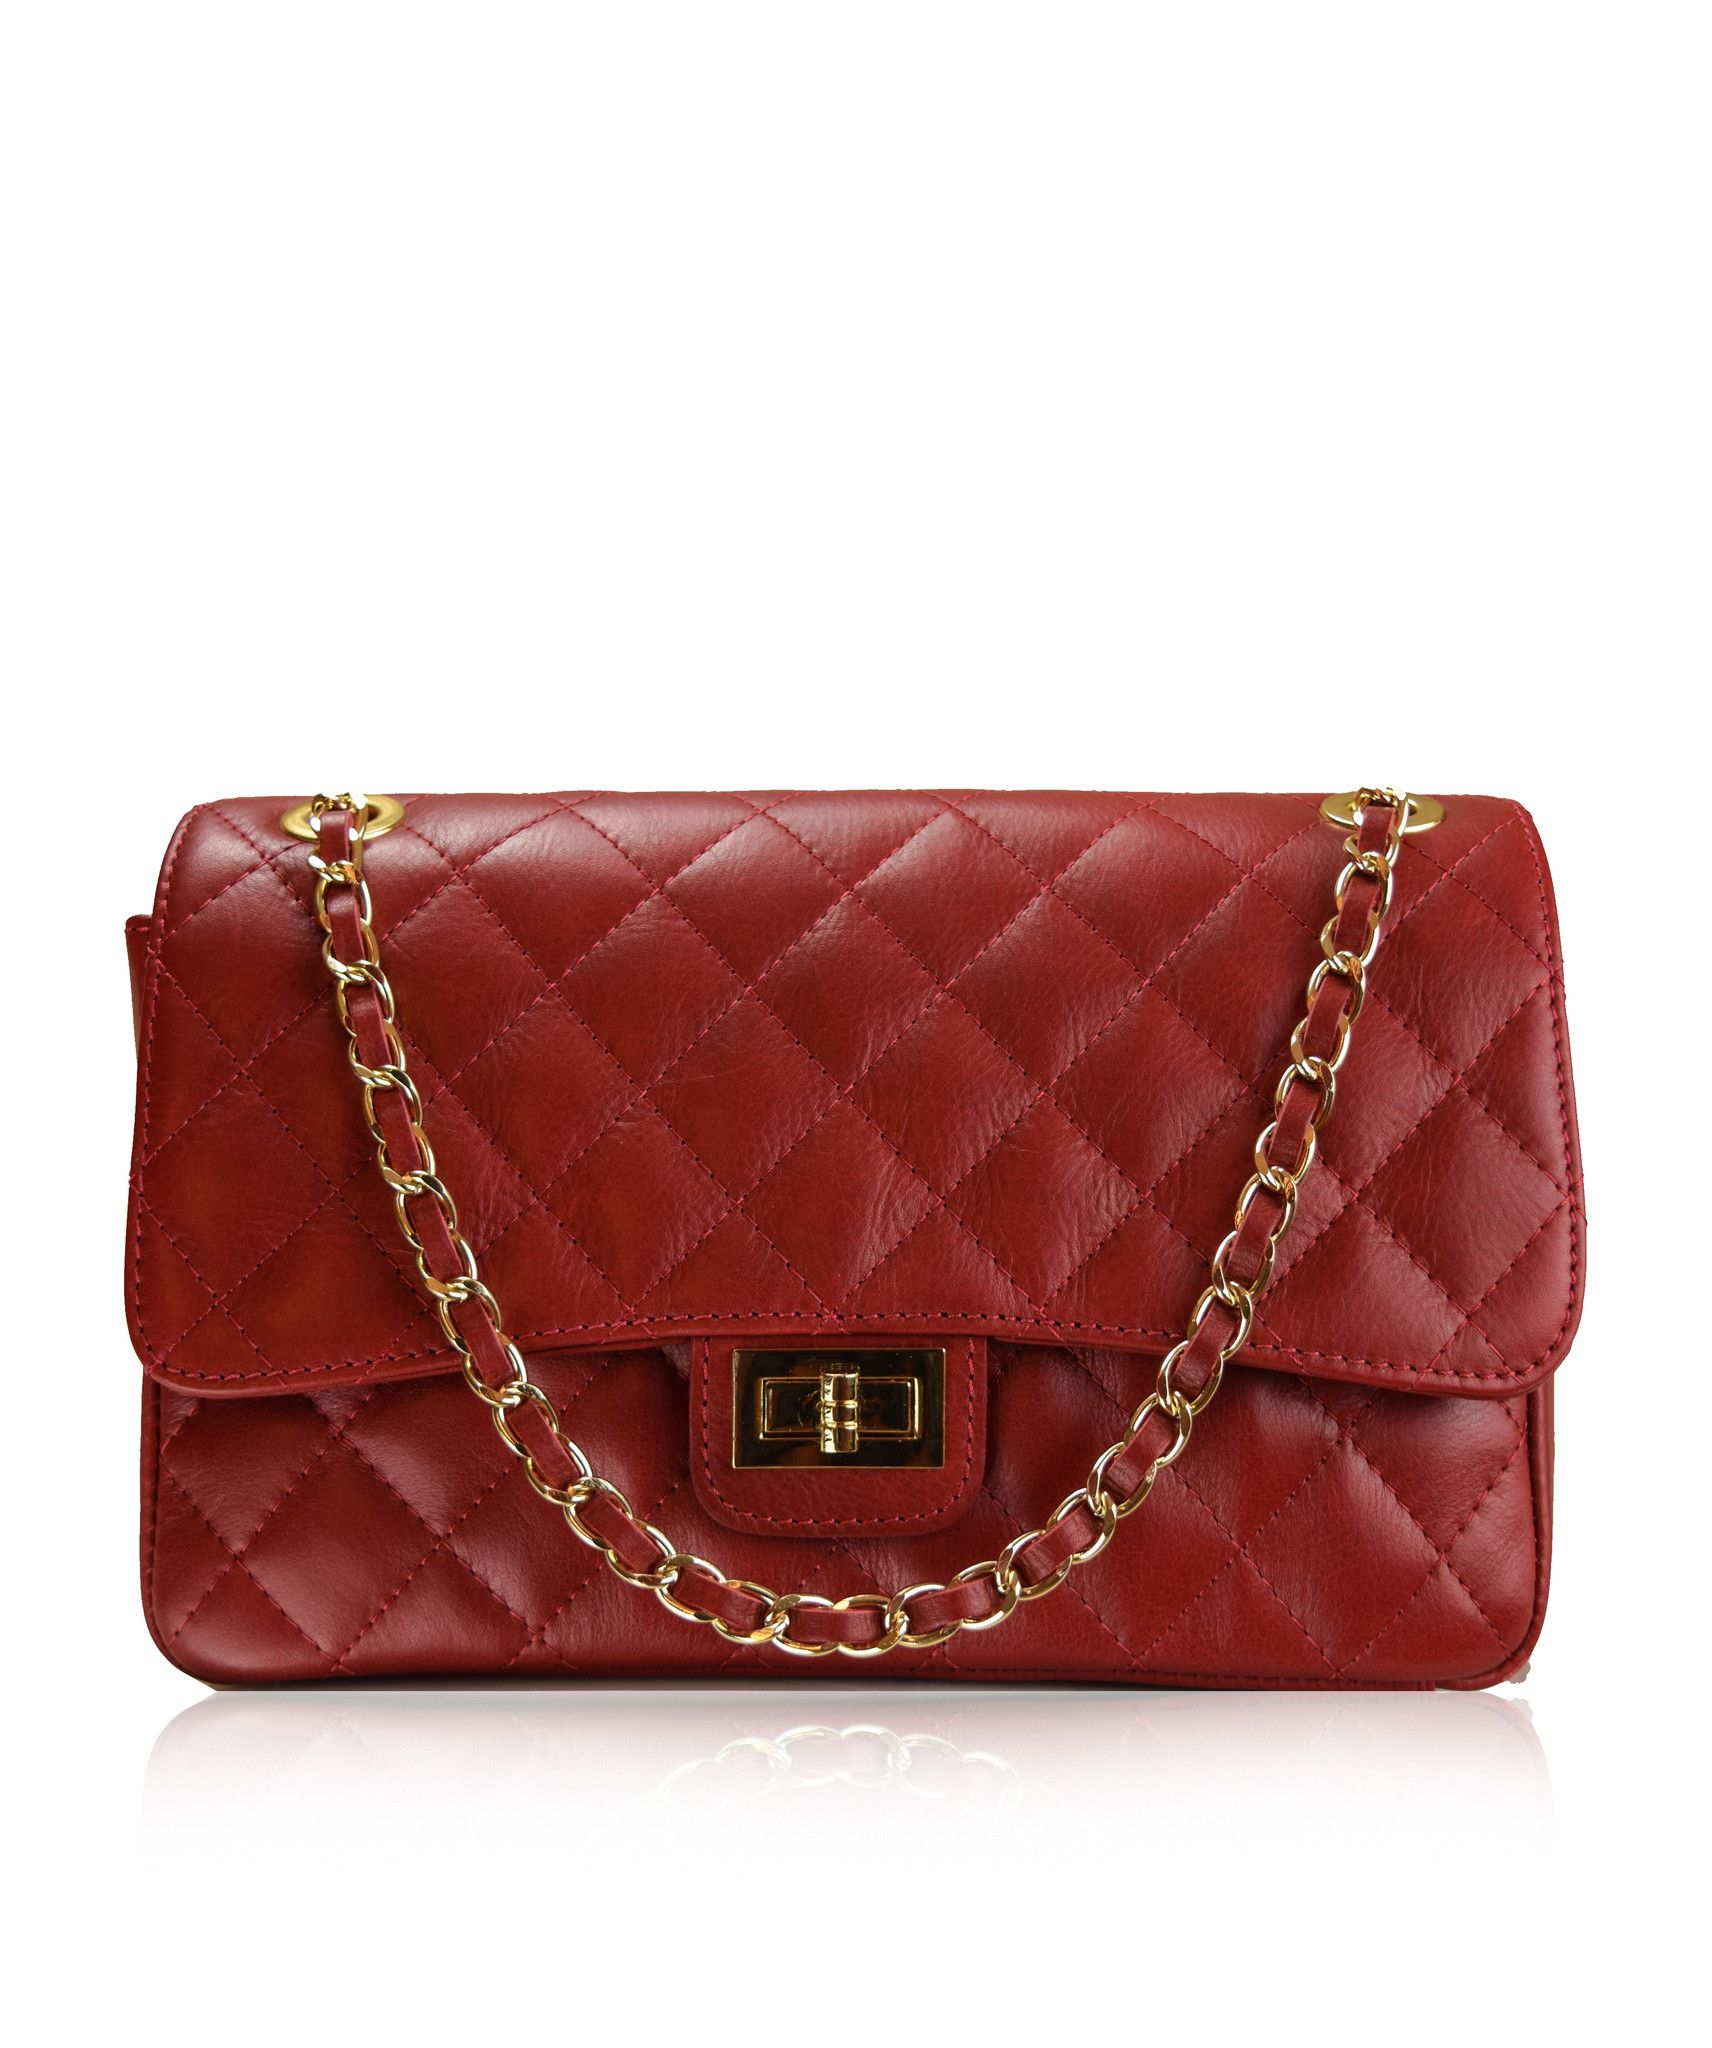 Stretto Medium Red Chanel Style Italian Quilted Leather Handbag From Florence Collection